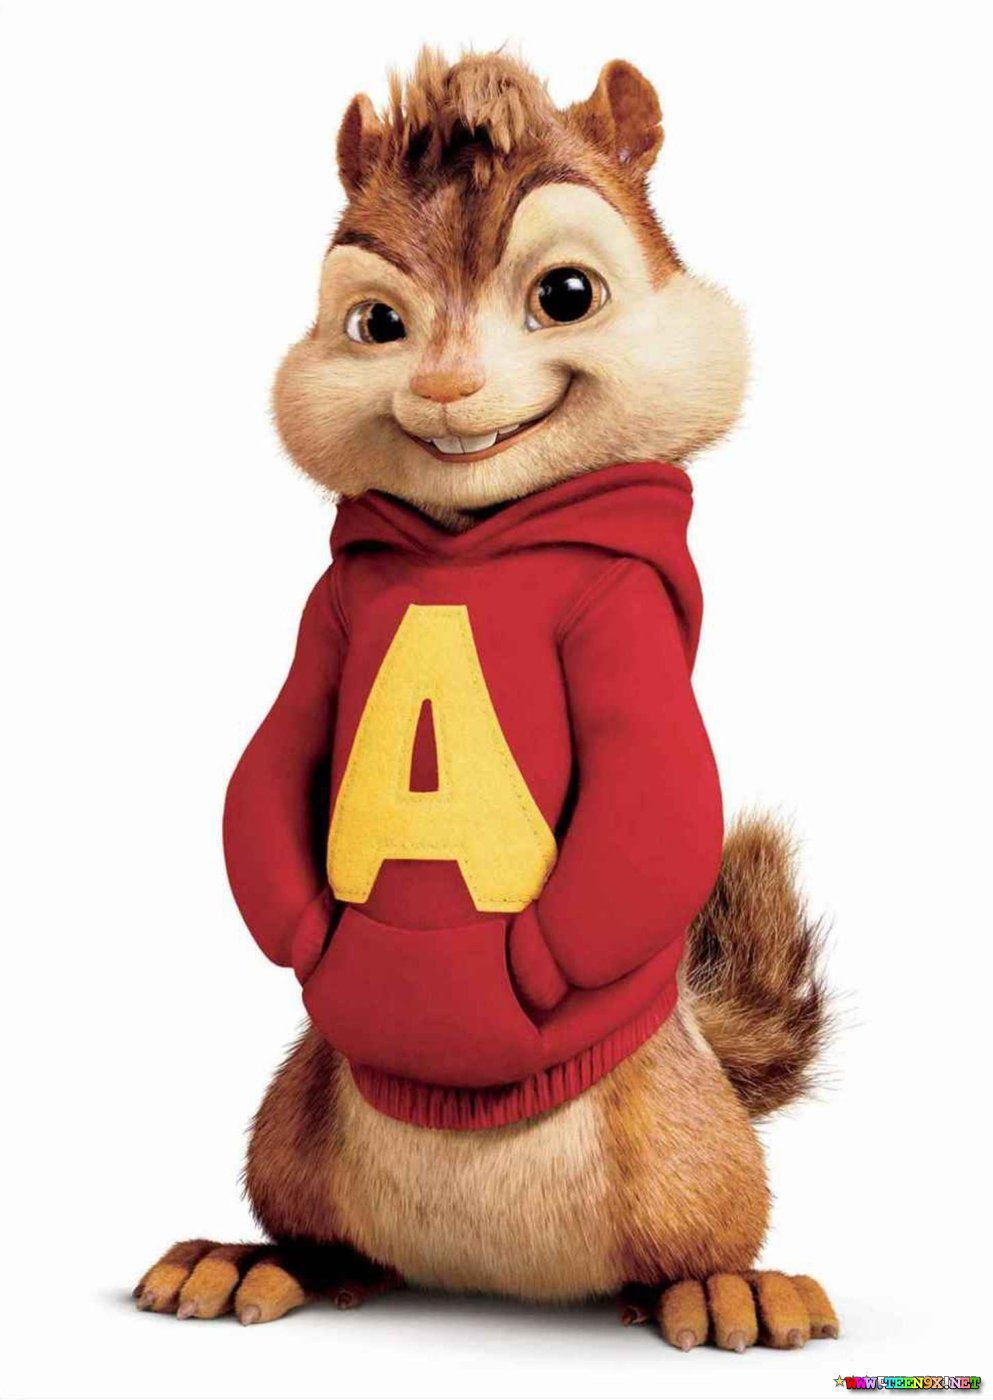 image - 906387-alvin-and-the-chipmunks cartoons | love interest